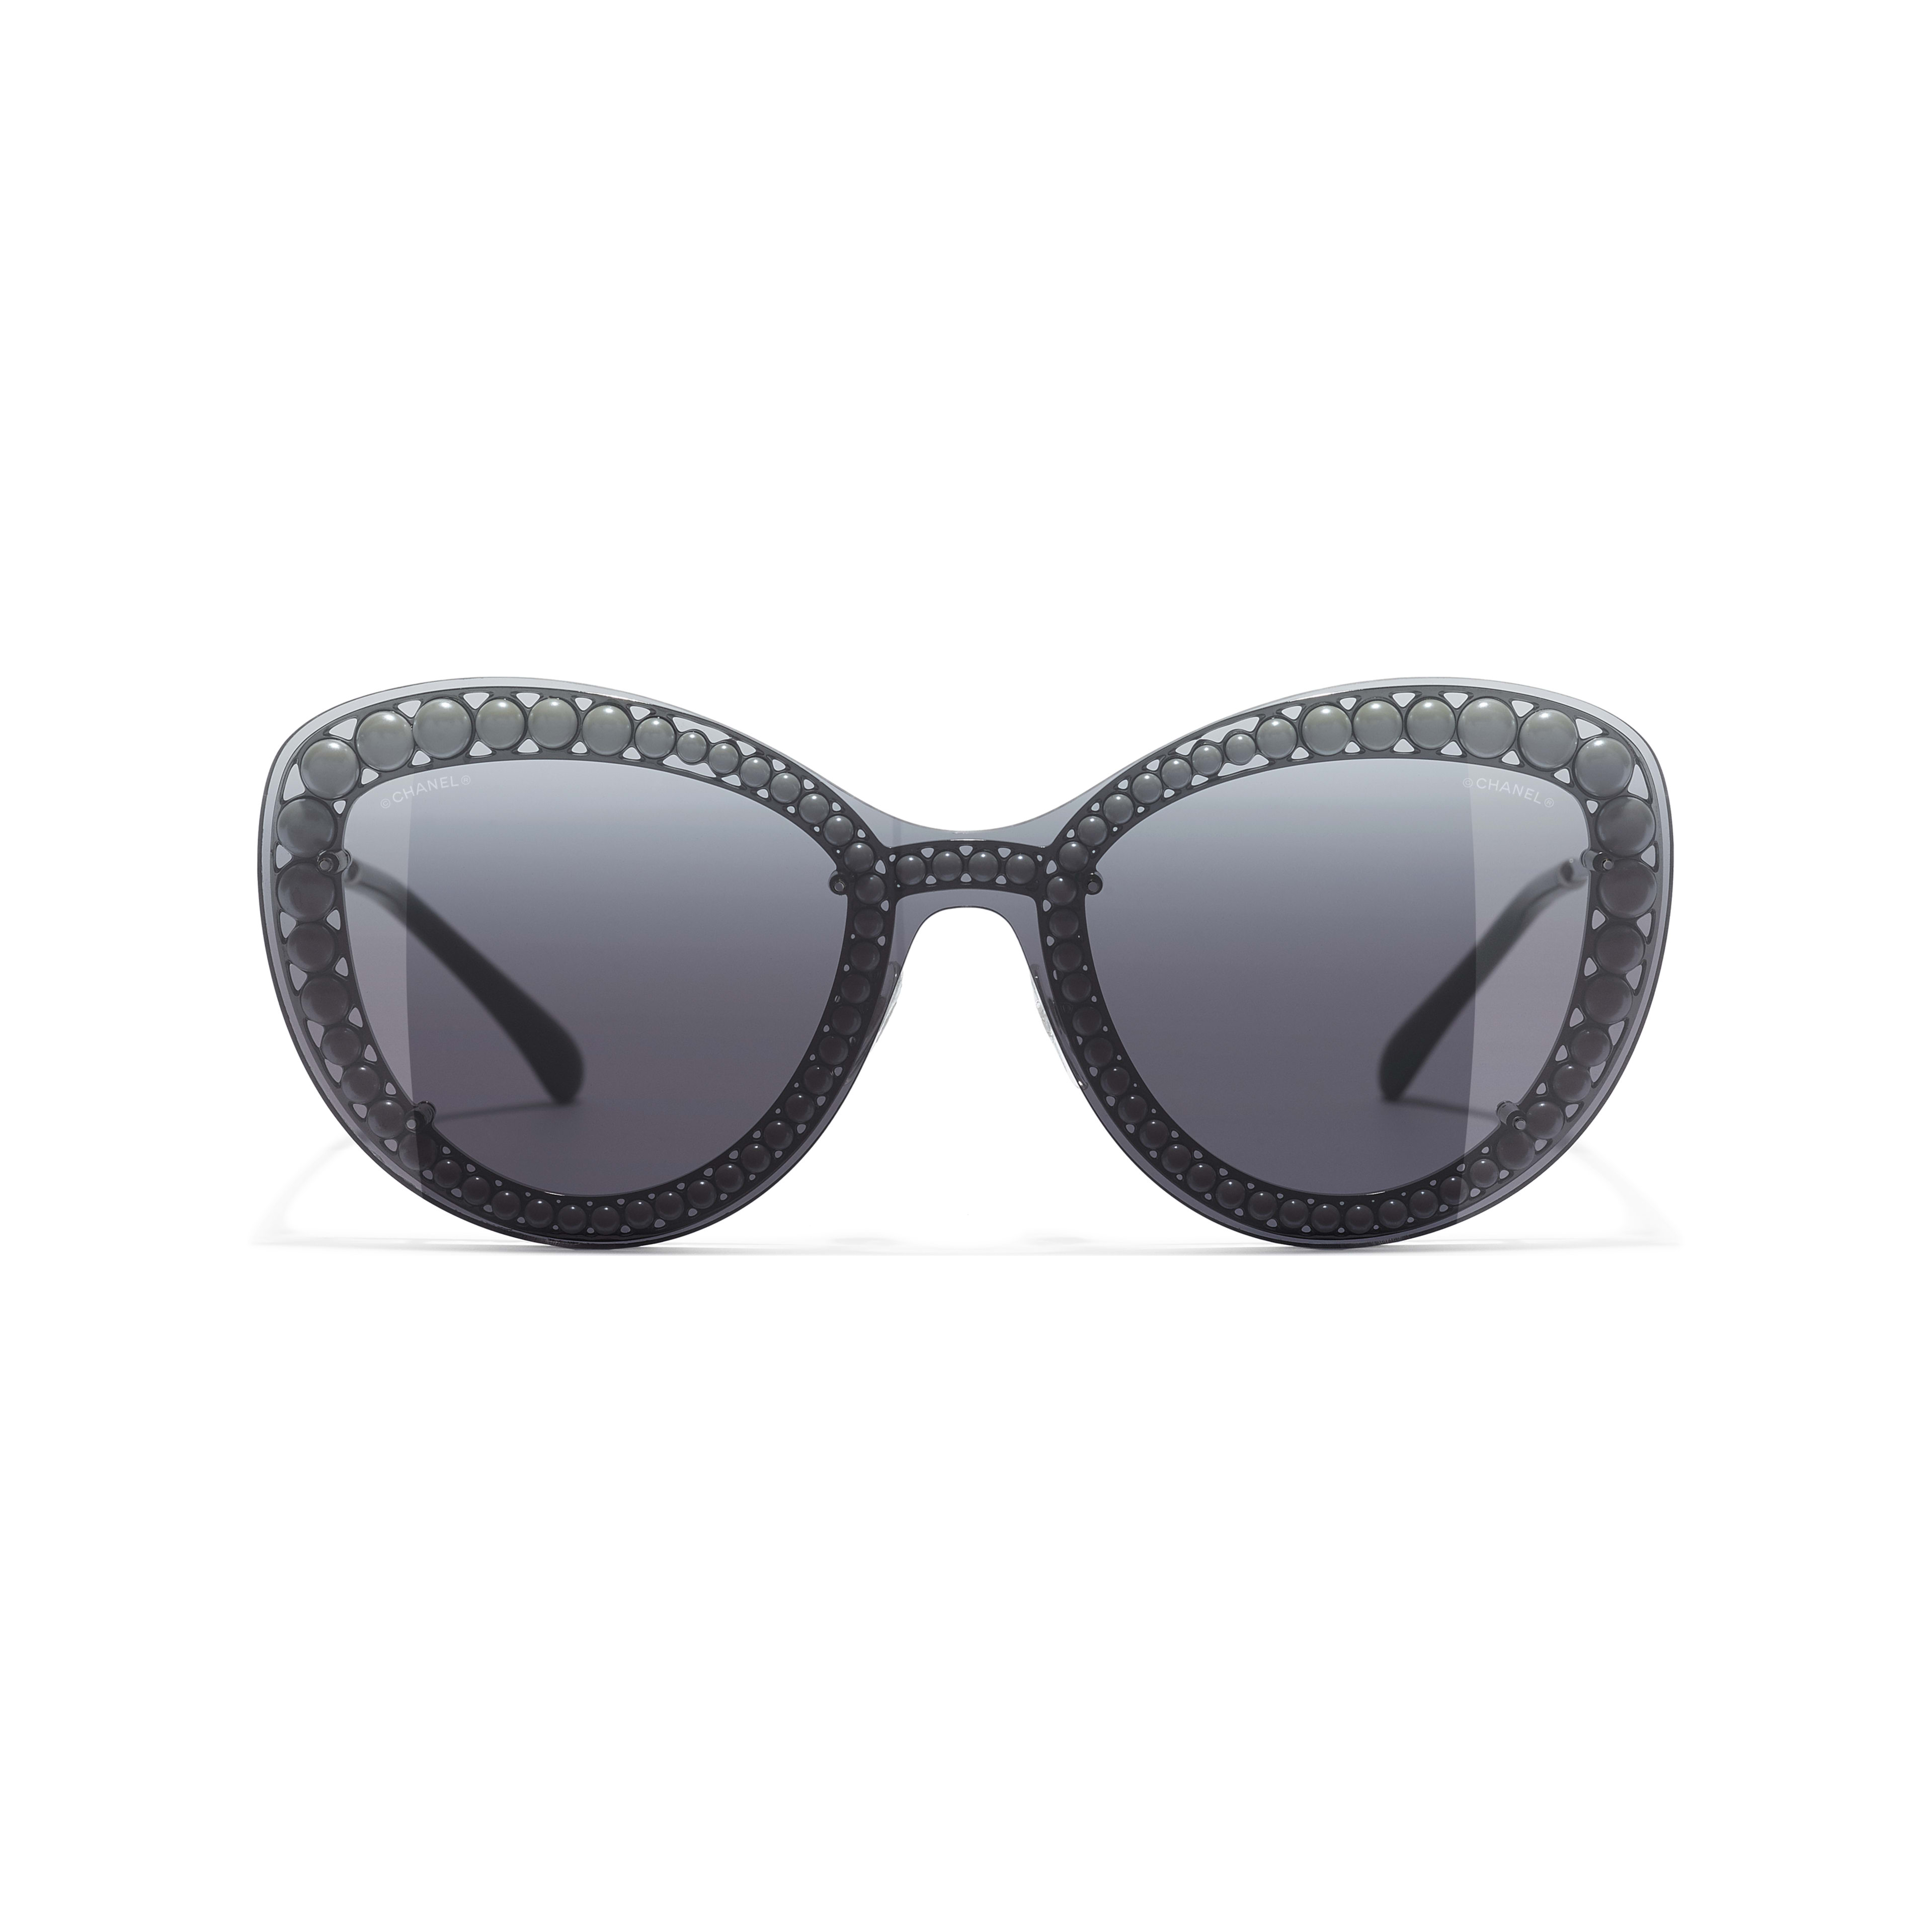 Butterfly Sunglasses - Silver - Metal & Imitation Pearls - Alternative view - see full sized version